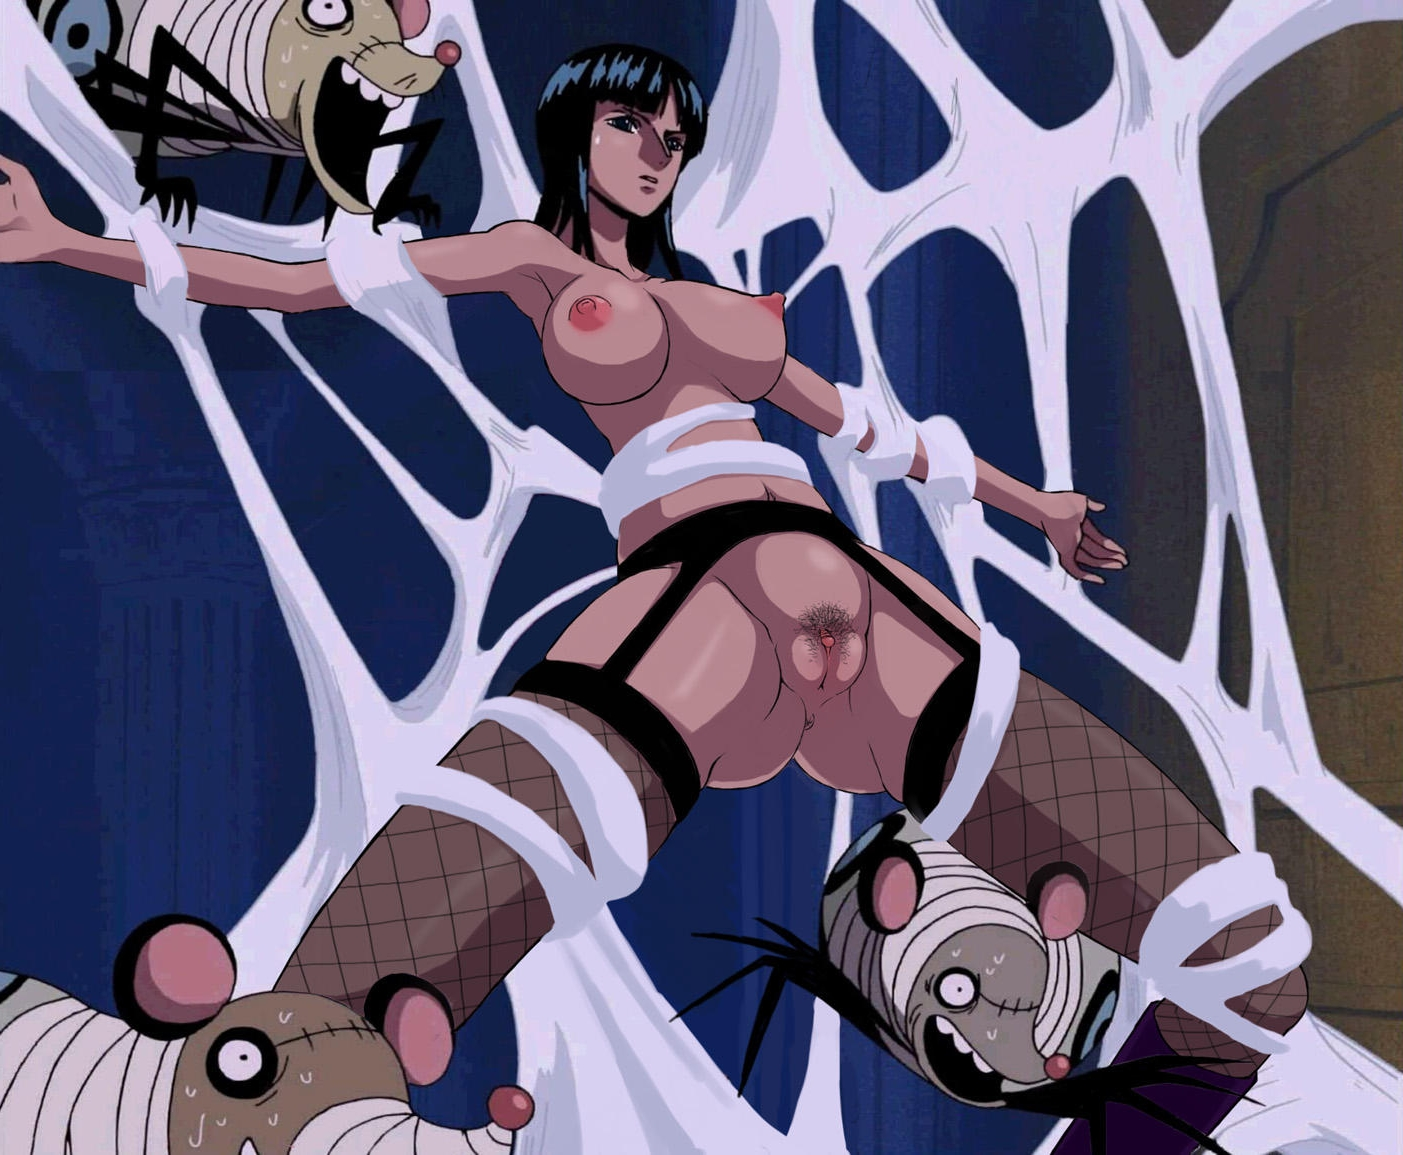 Toon sex pic ##000130104532 anus bondage breasts cap clitoris functionally nude nico robin nipples nude filter one piece photoshop pubic hair pussy screencap spider mice spider web uncensored